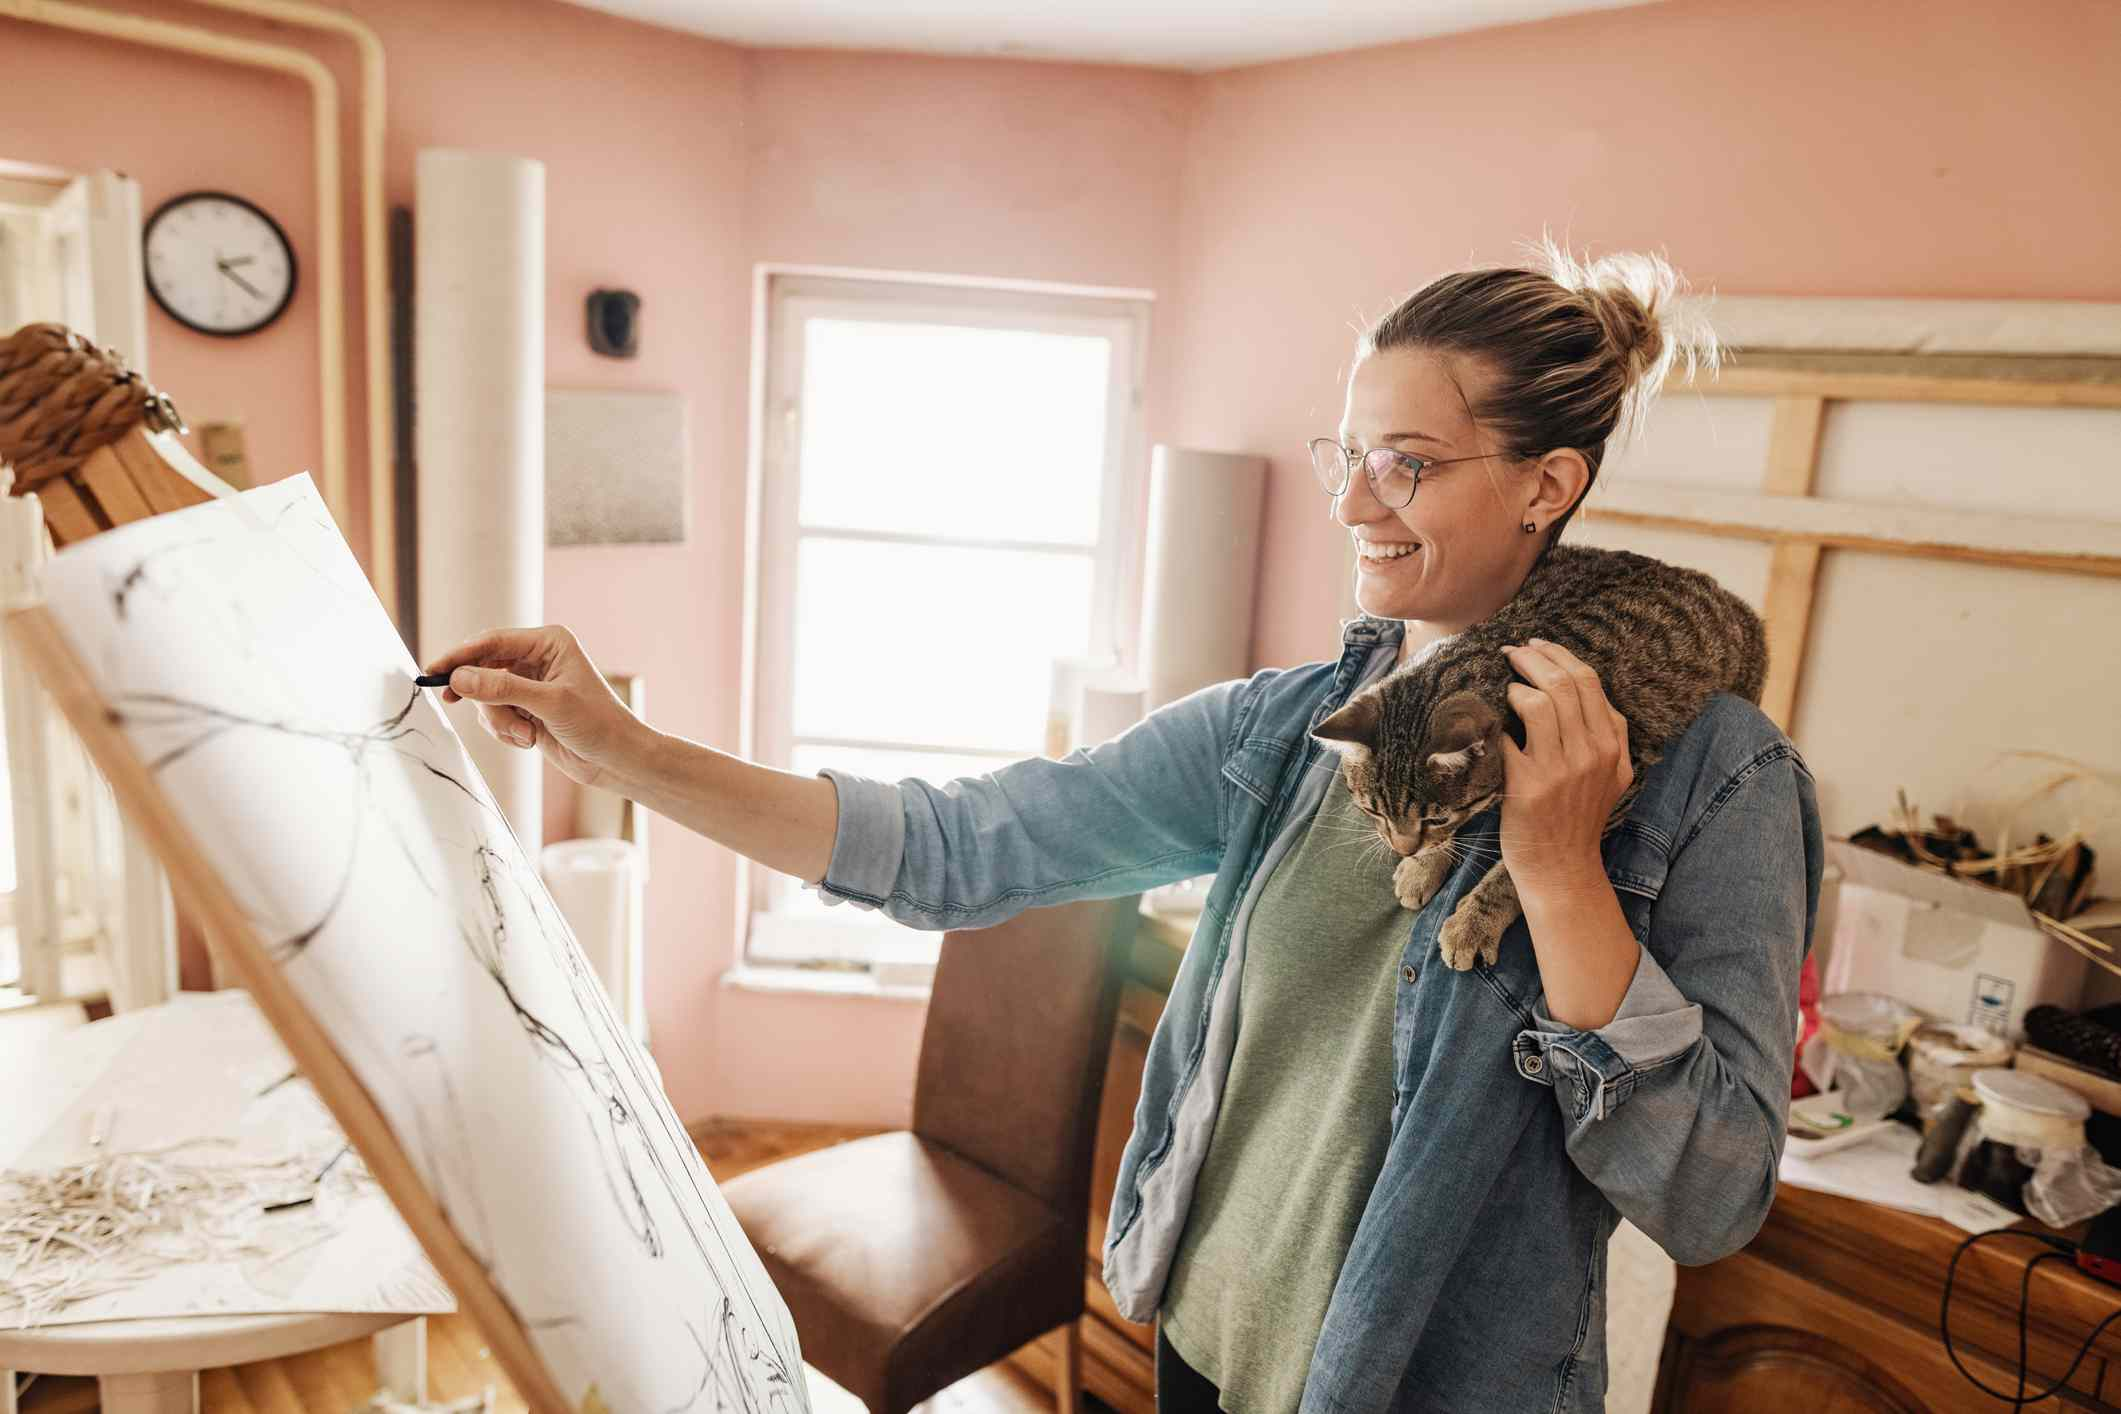 tabby cat crawls on woman's shoulder as she draws on canvas